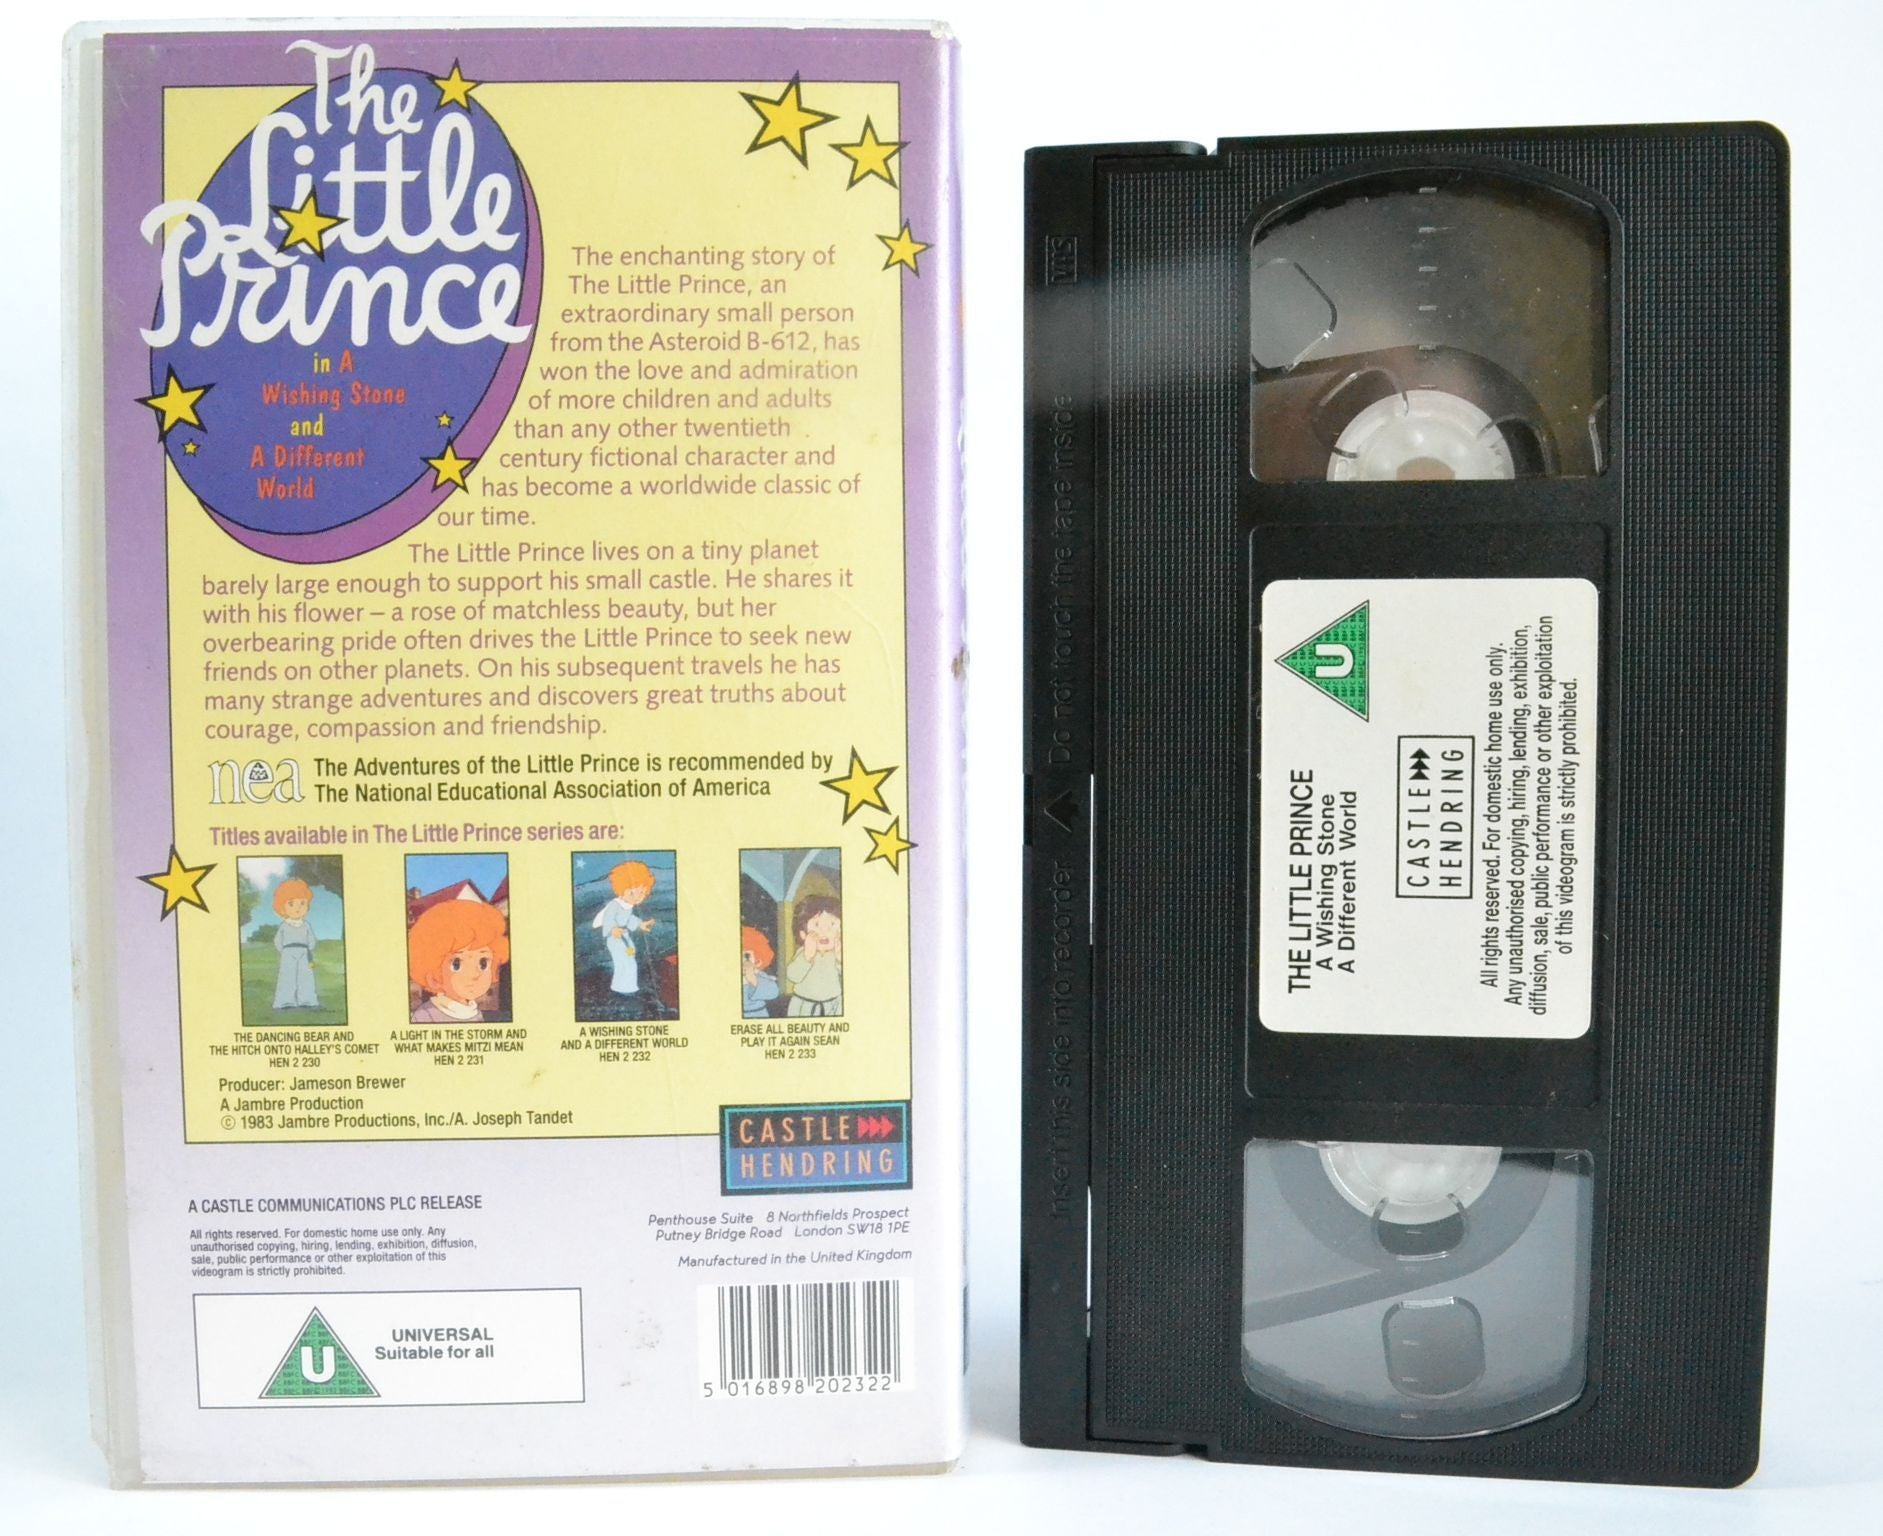 The Little Prince: A Wishing Stone - A Different World - Charming Children - VHS